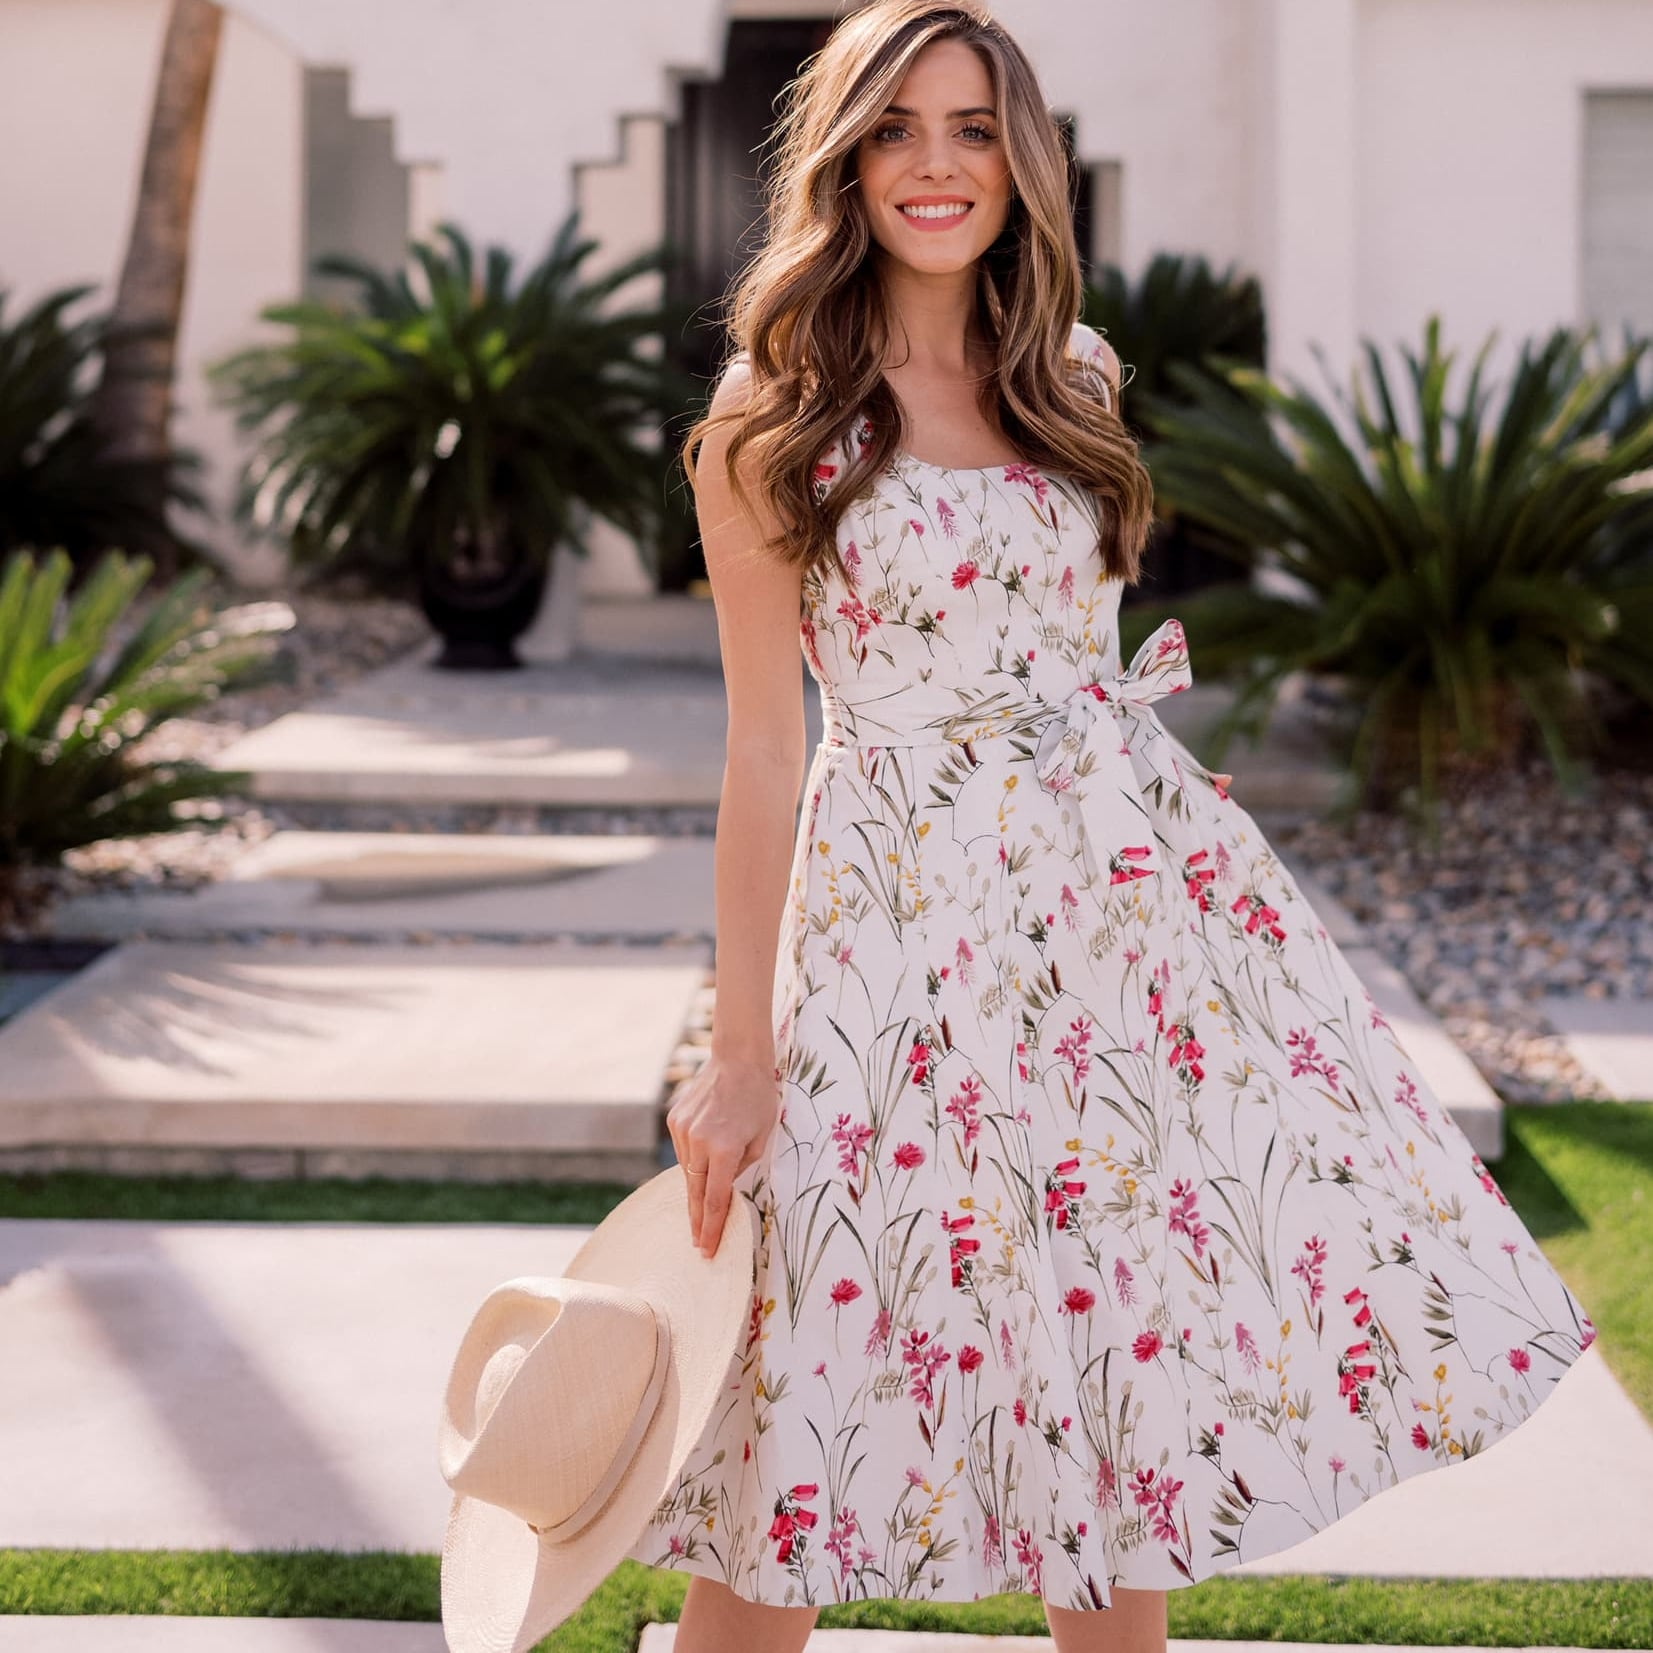 Summer Dresses You Need In Your Wardrobe This Summer